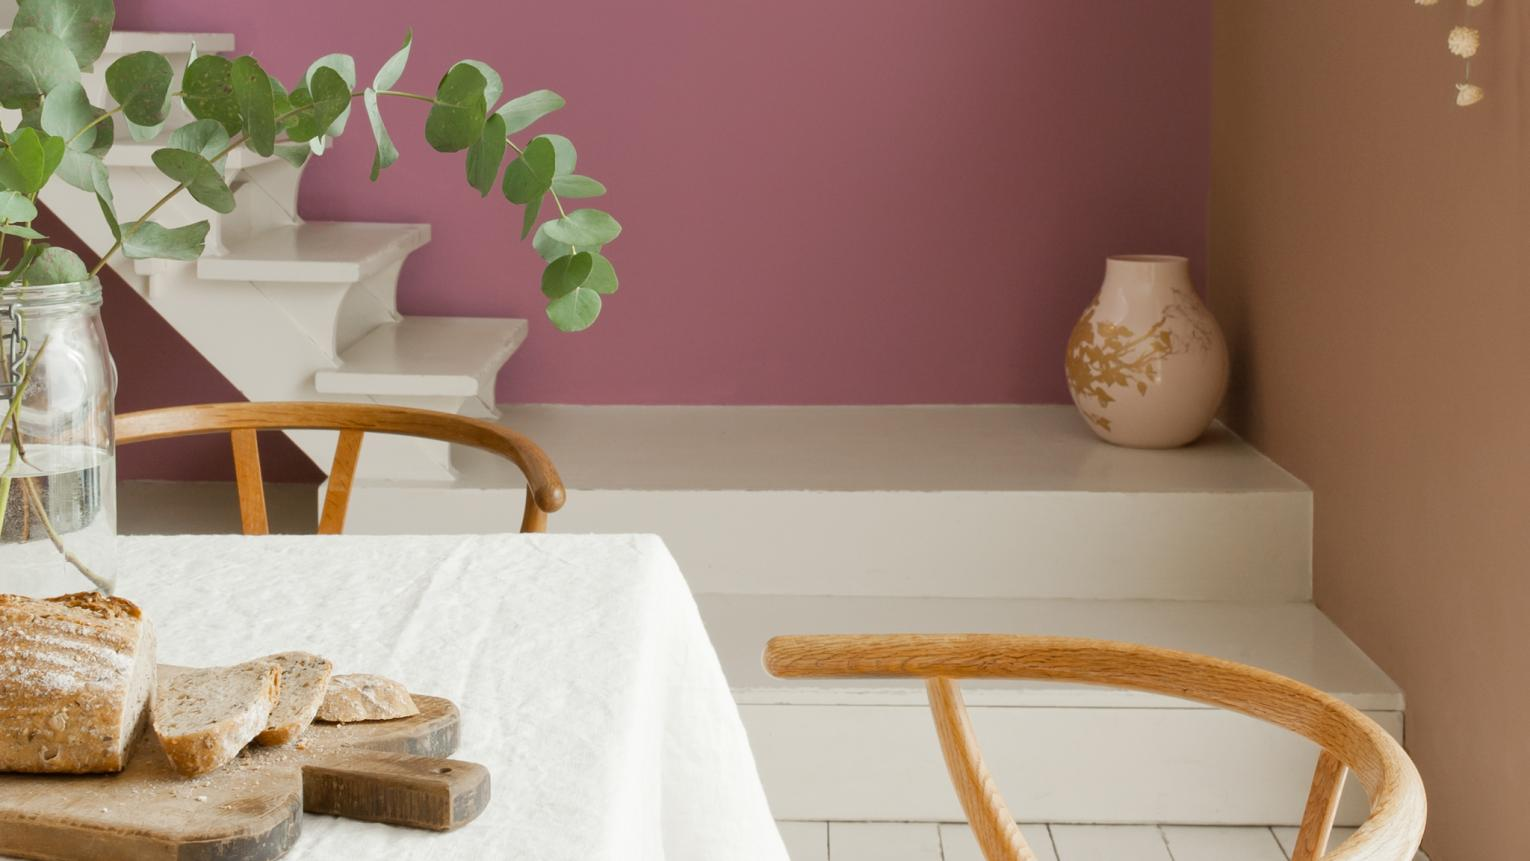 Warm shades of berry purple and brown inspire intimate dining.